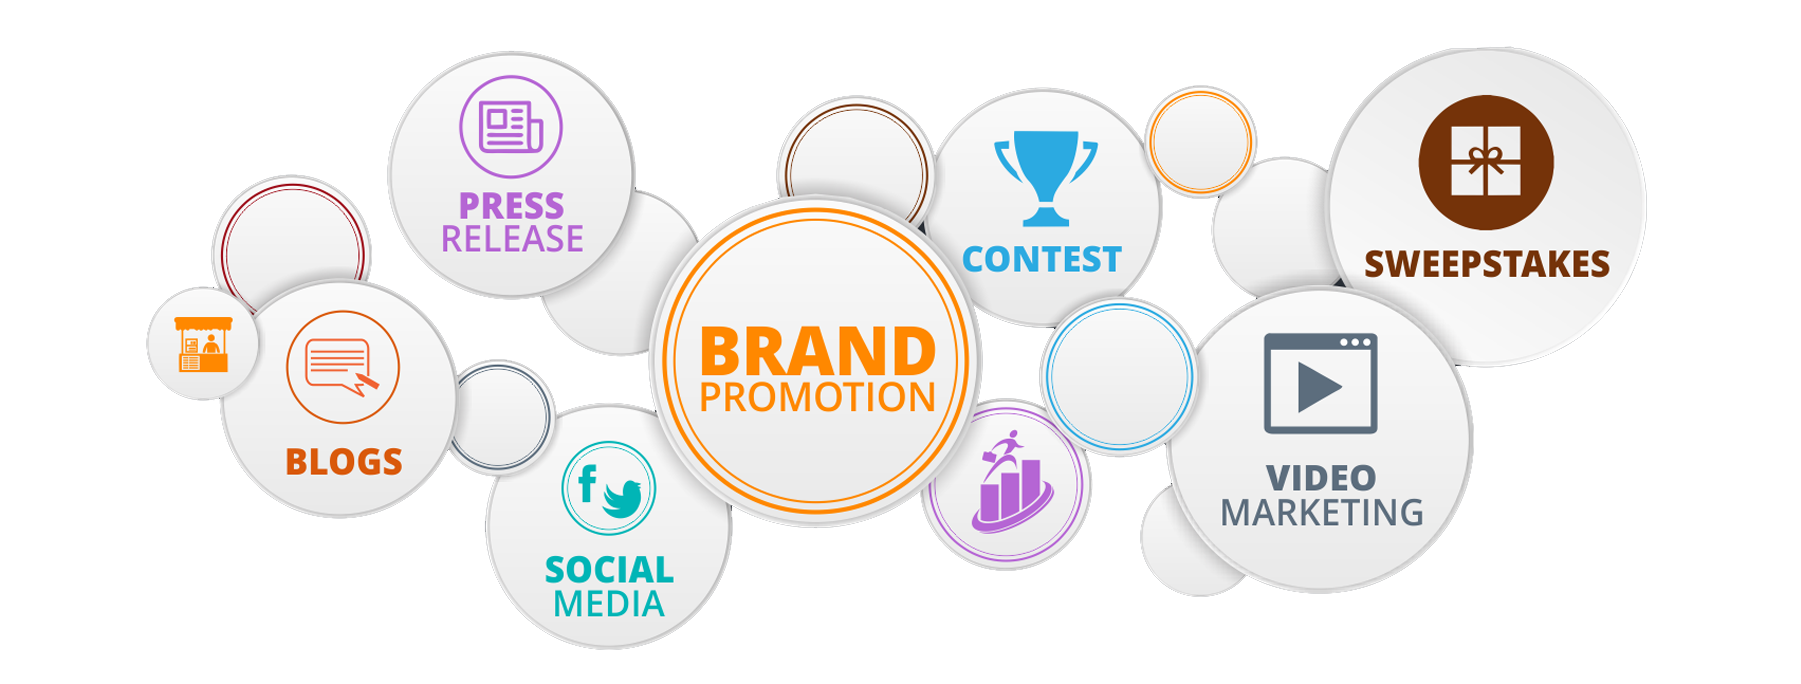 promotion & marketing - banner element 1 - ibiixo